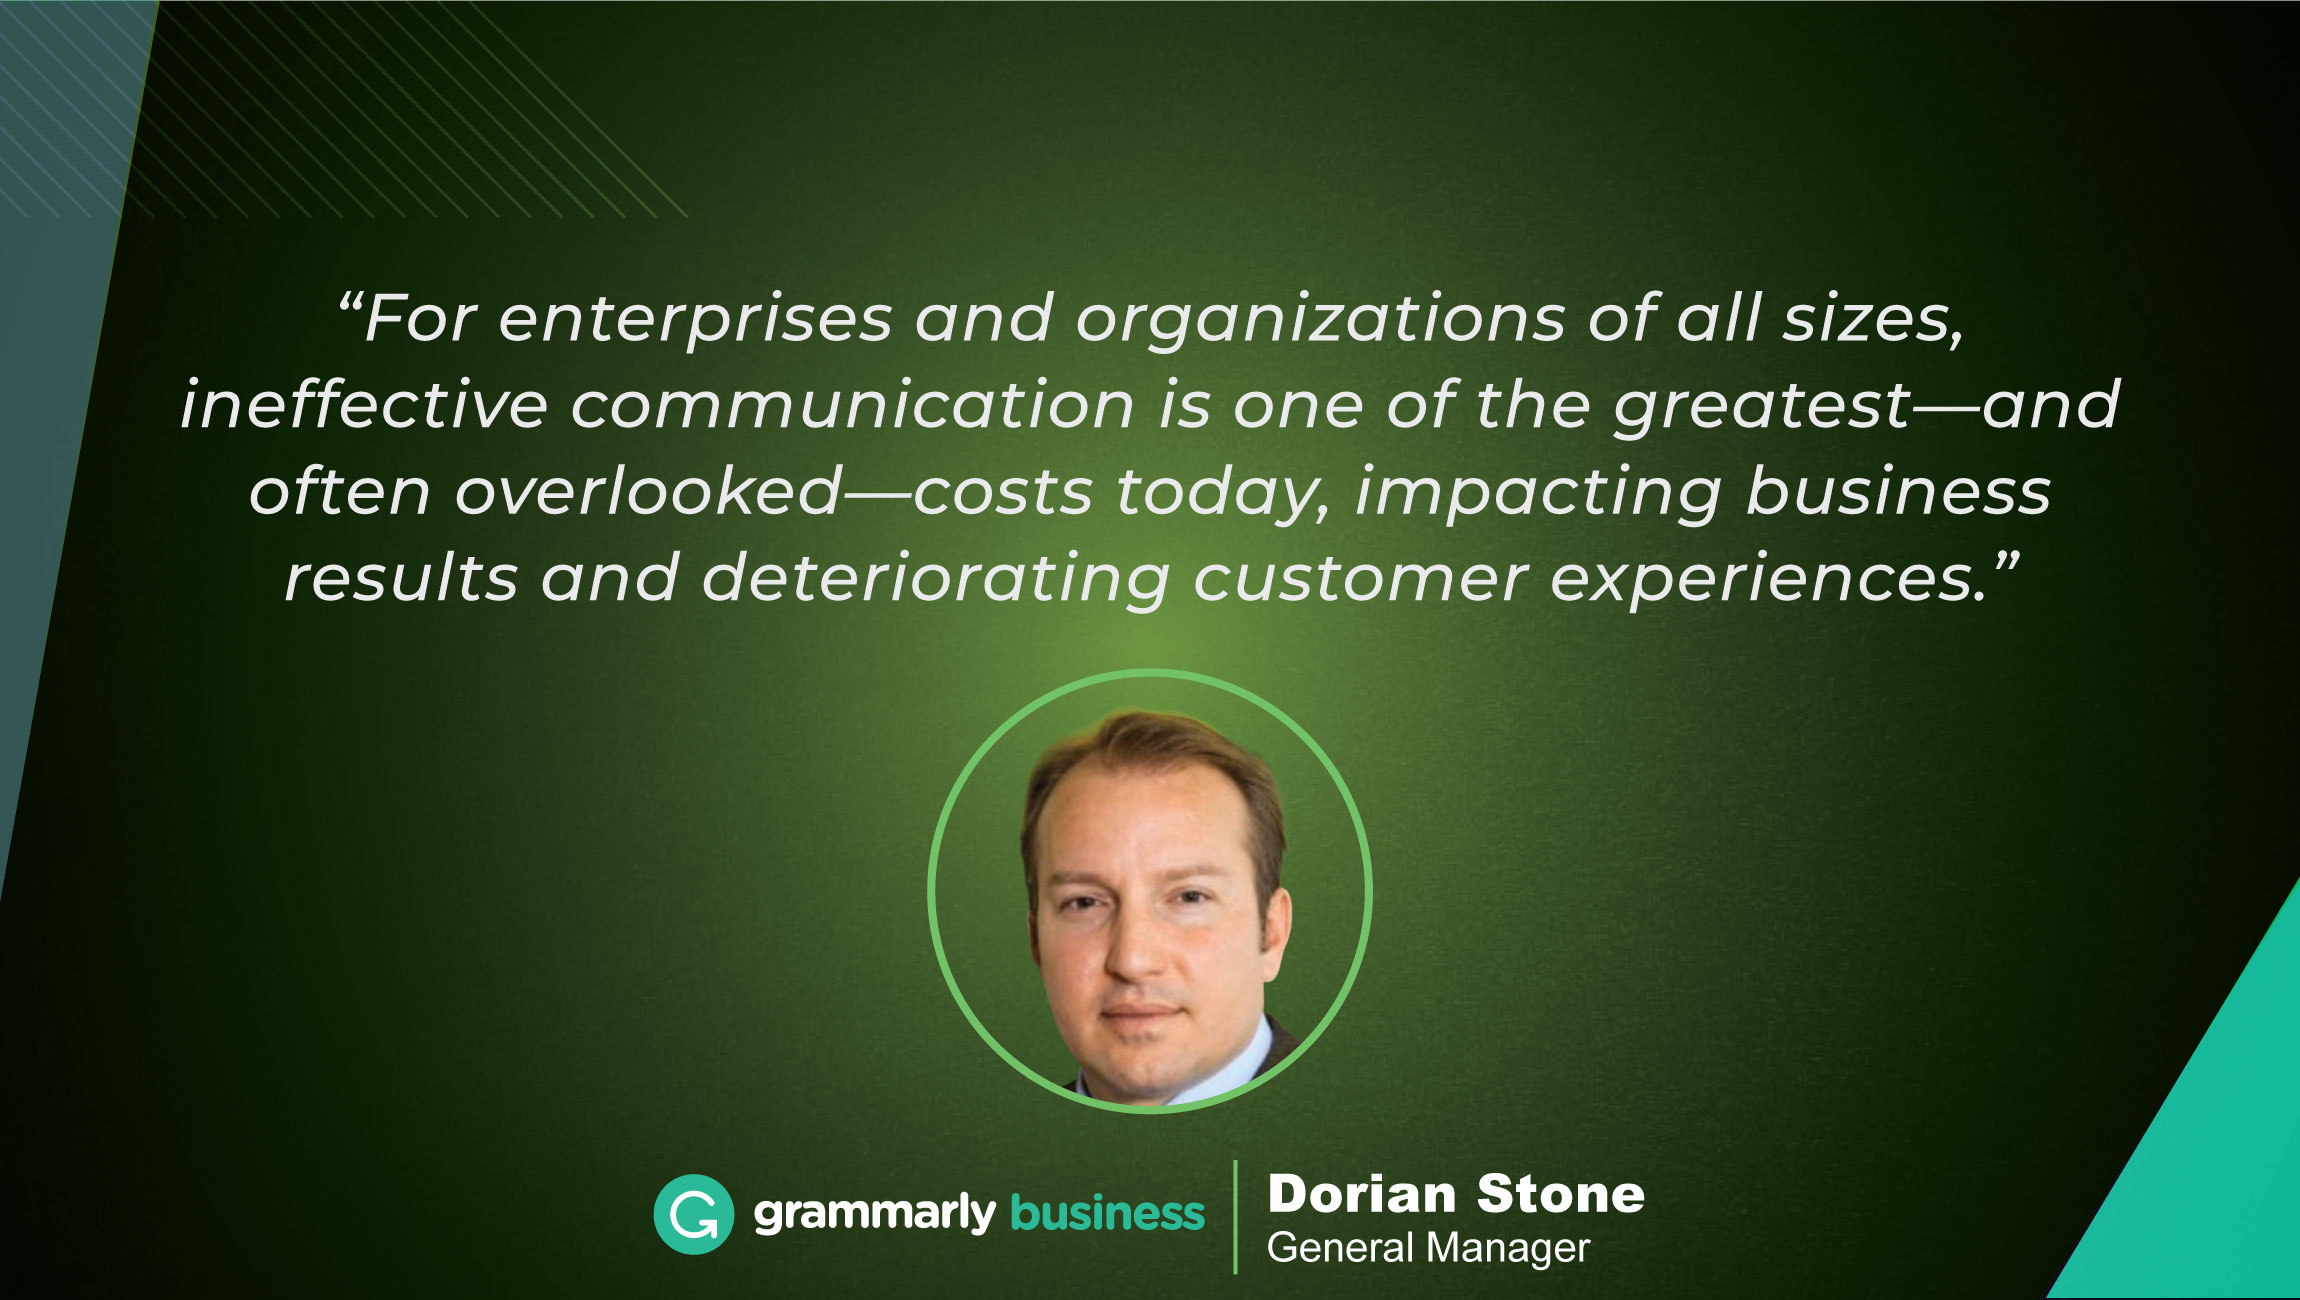 TechBytes with Dorian Stone, General Manager at Grammarly Business